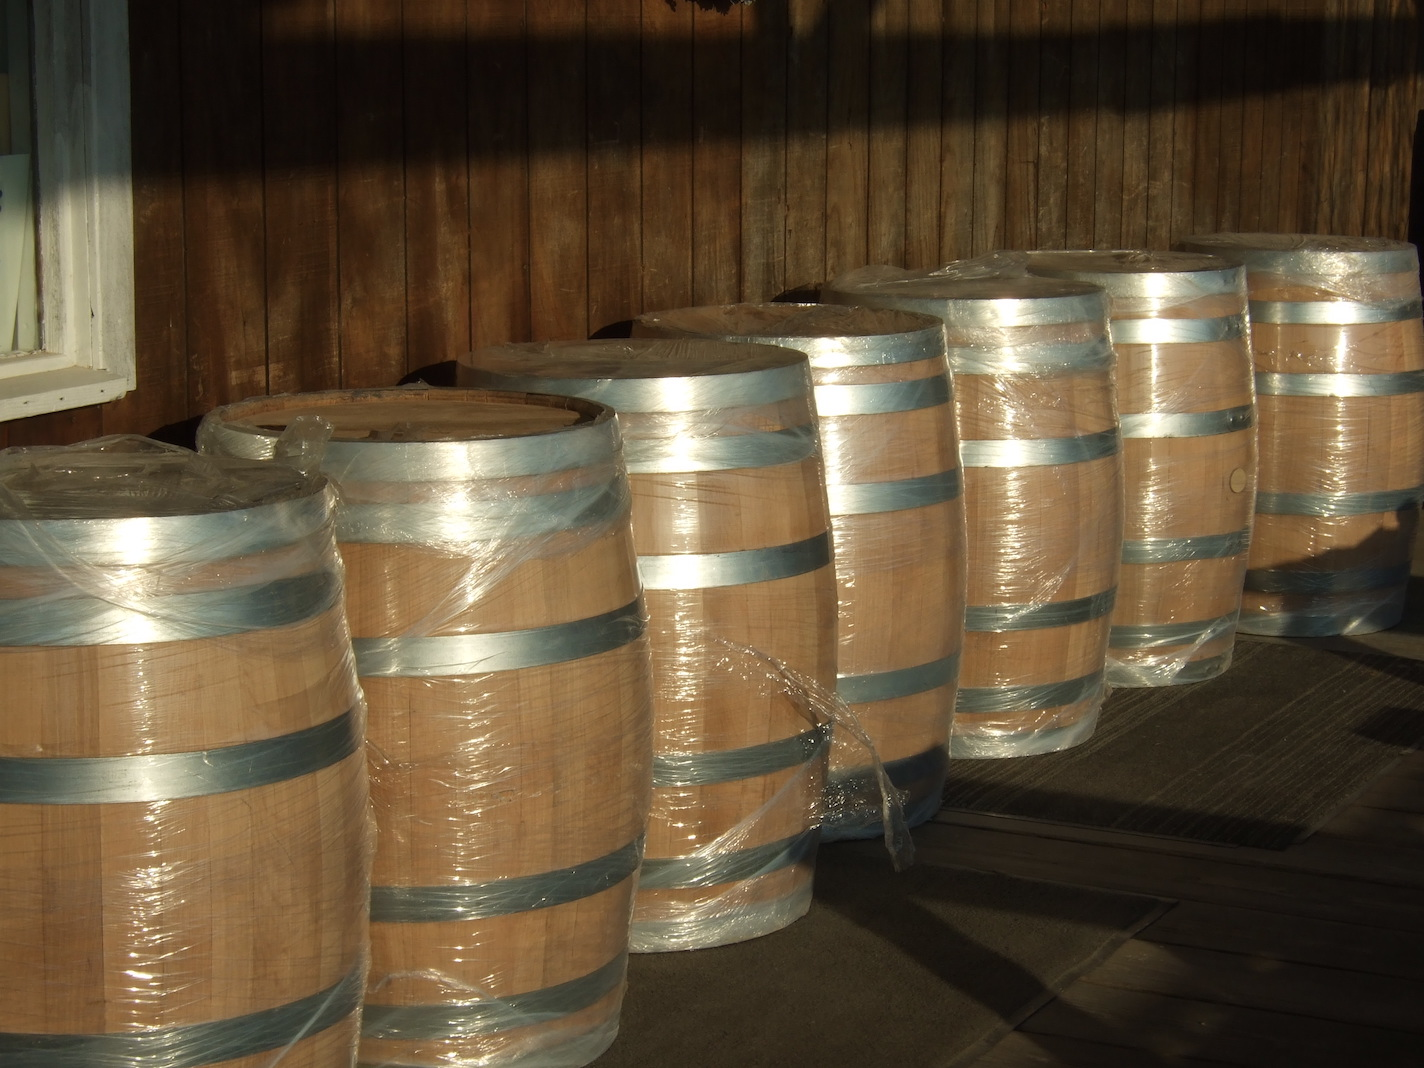 Barrel Delivery | Courtesy of Robller Vineyard & Winery